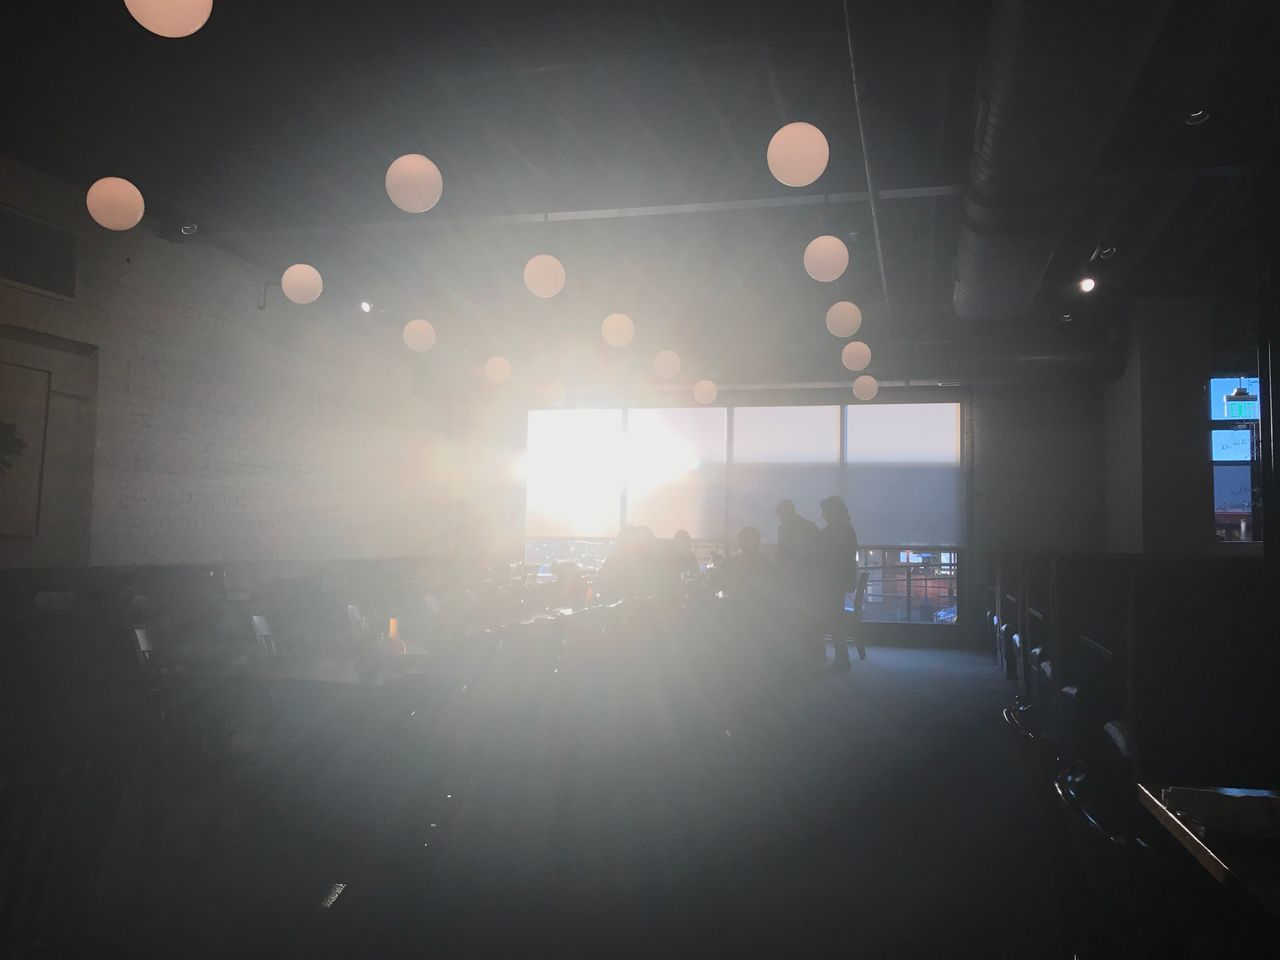 Arts Culture And Entertainment Illuminated Real People Men Indoors  Event Nightlife Large Group Of People Crowd Night People Restaurant Gathering Celebration Interior Sunset